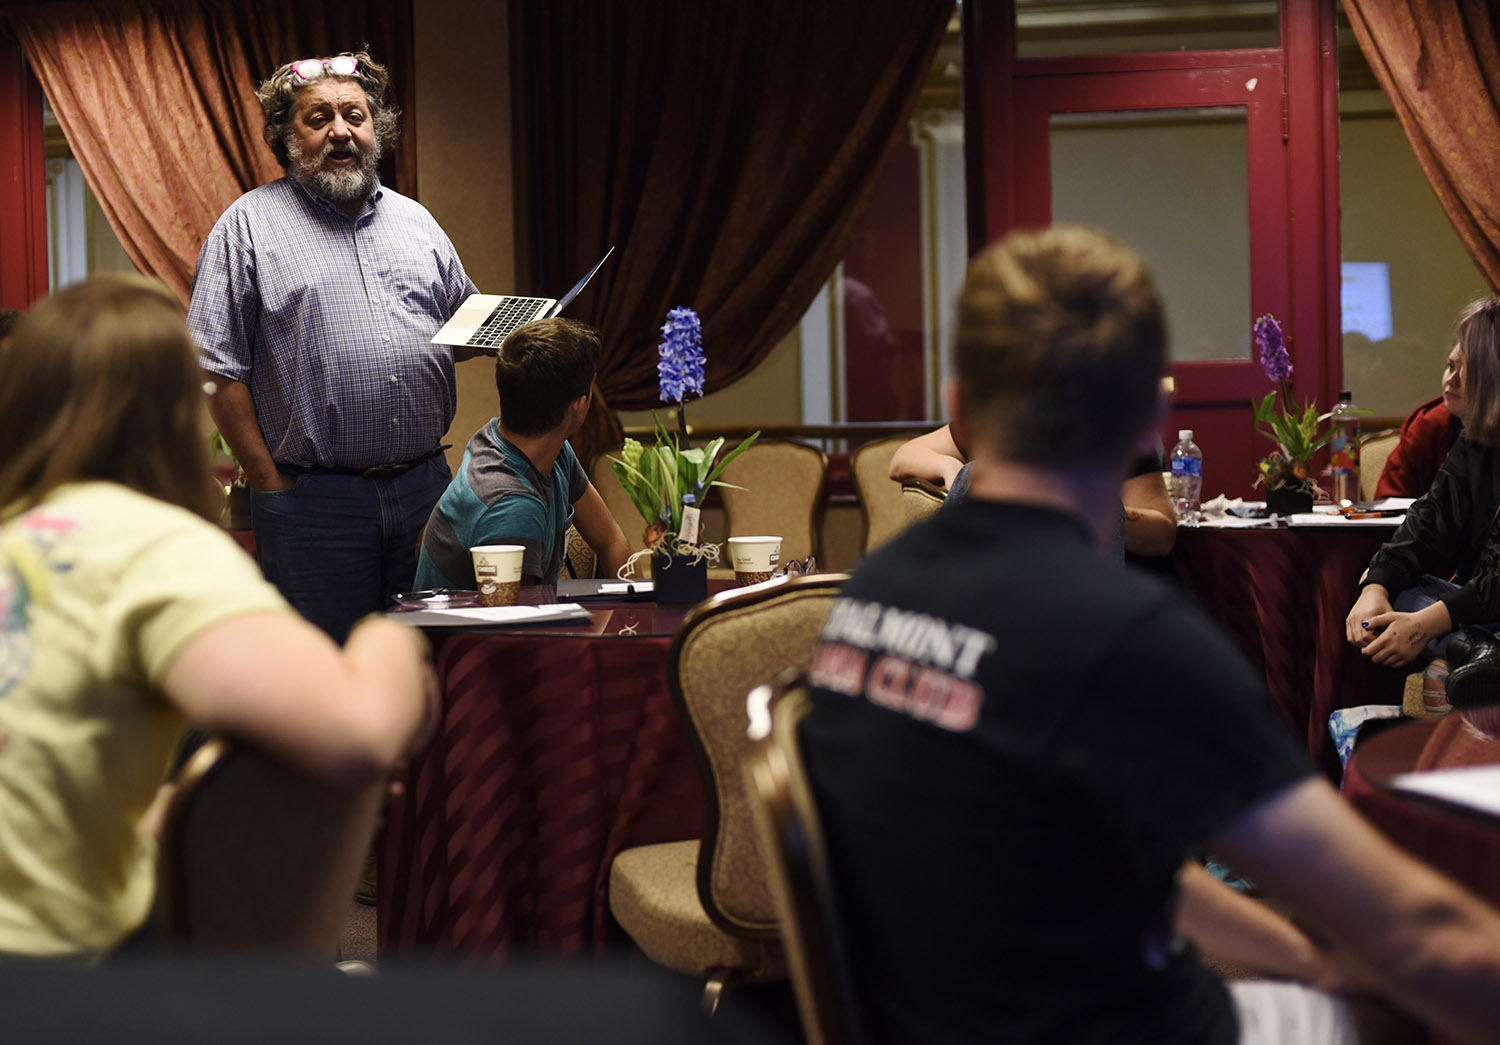 Proctors CEO Philip Morris talks to Broadway Tech students about the creative economy in the Guild Room at Proctors in Schenectady Thursday, September 28, 2017. Students spent four days with creative professionals from Proctors and The Color Purple during the show's teching period at the theatre.